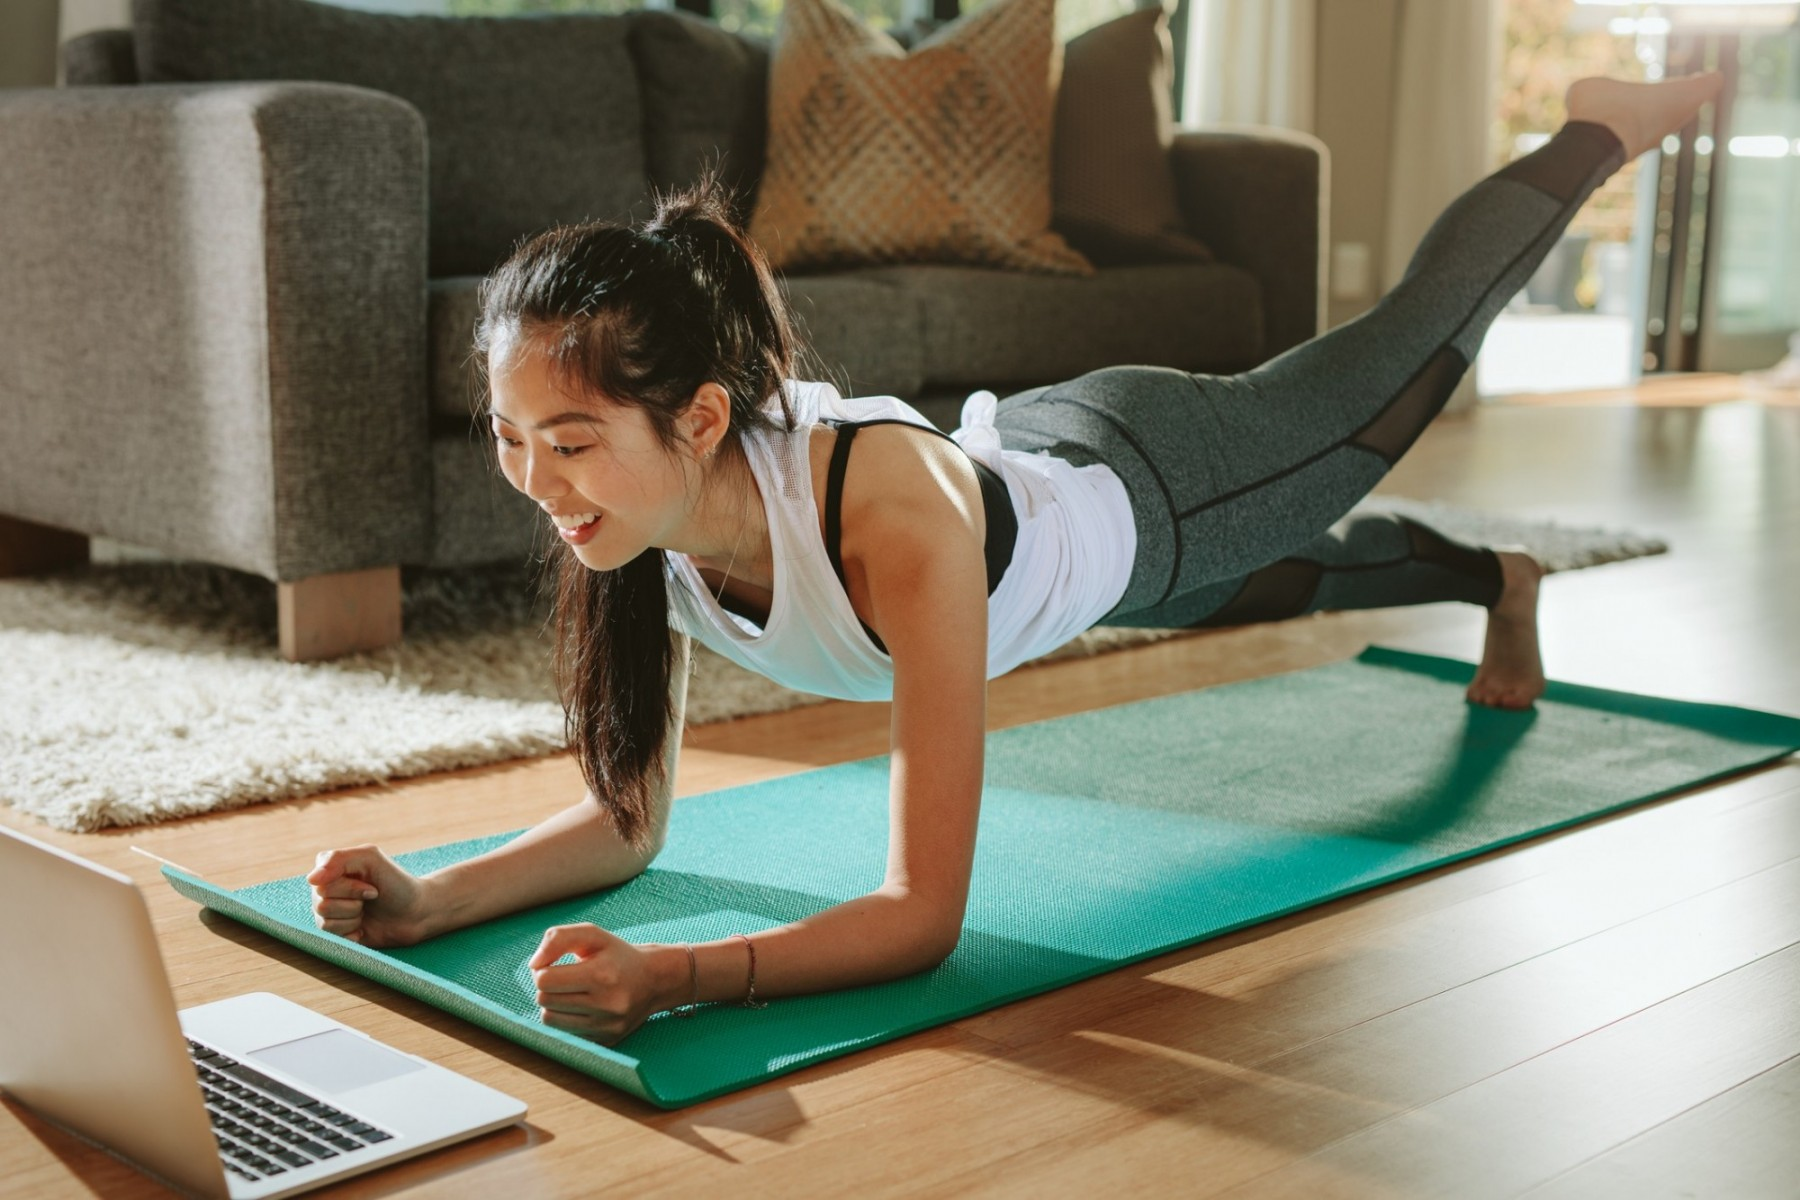 A woman doing a plank on a yoga mat at home with one leg raised in the air